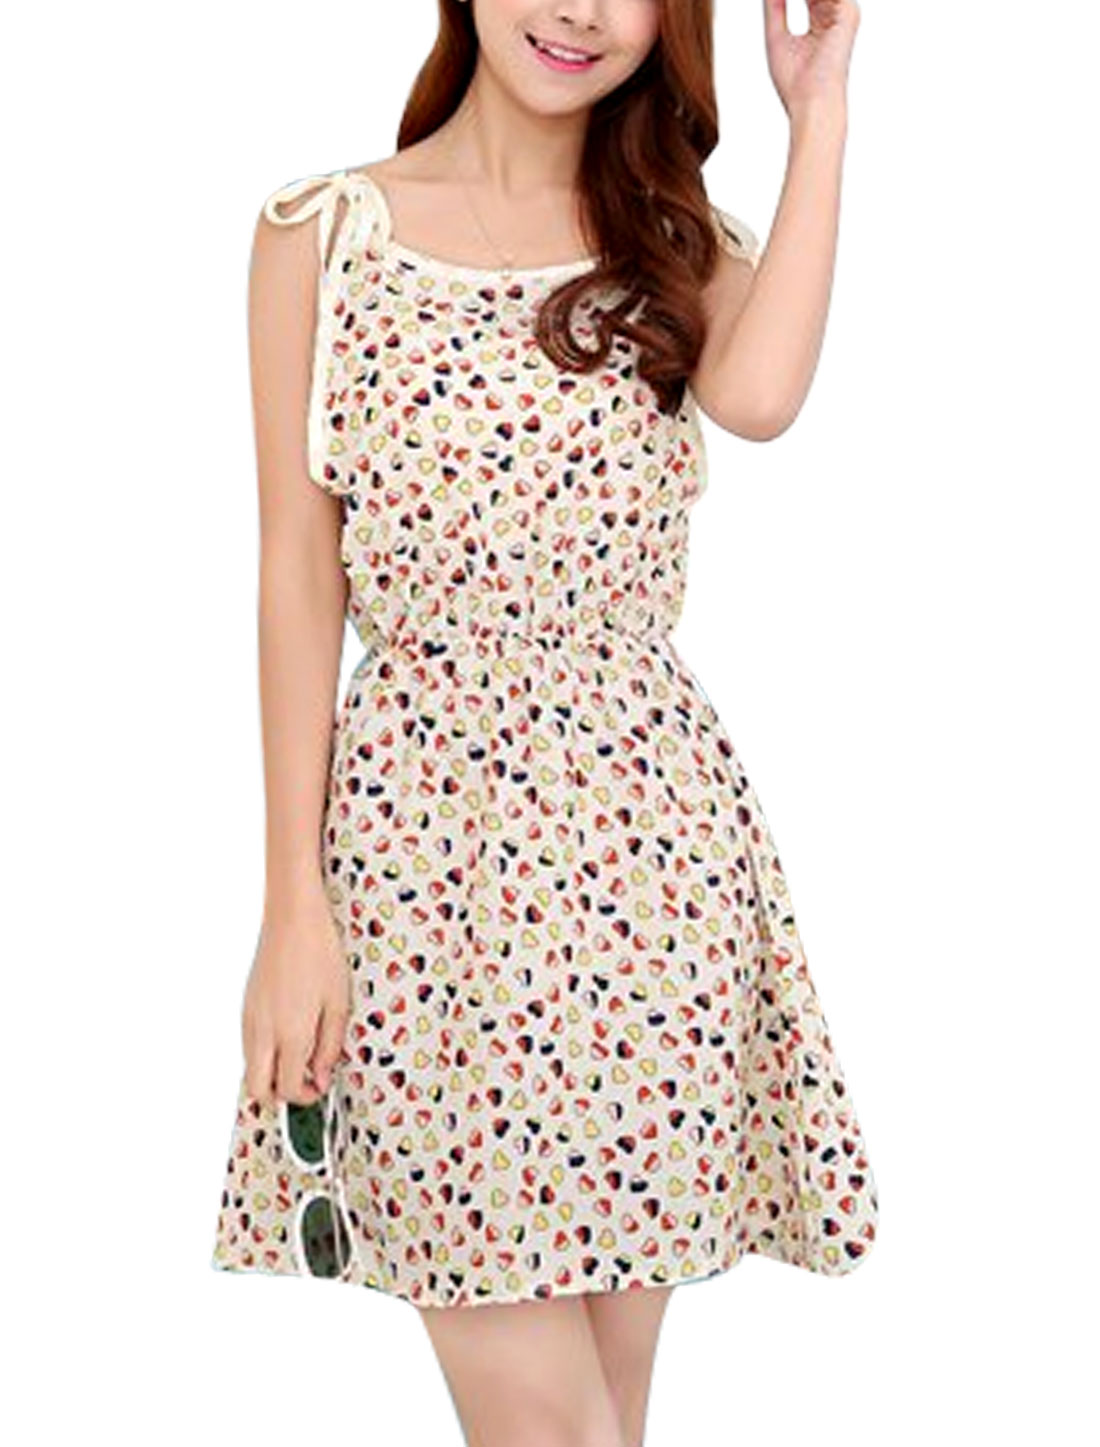 Women Sleeveless Self Tie Straps Hearts Prints Sun Dress Beige XS